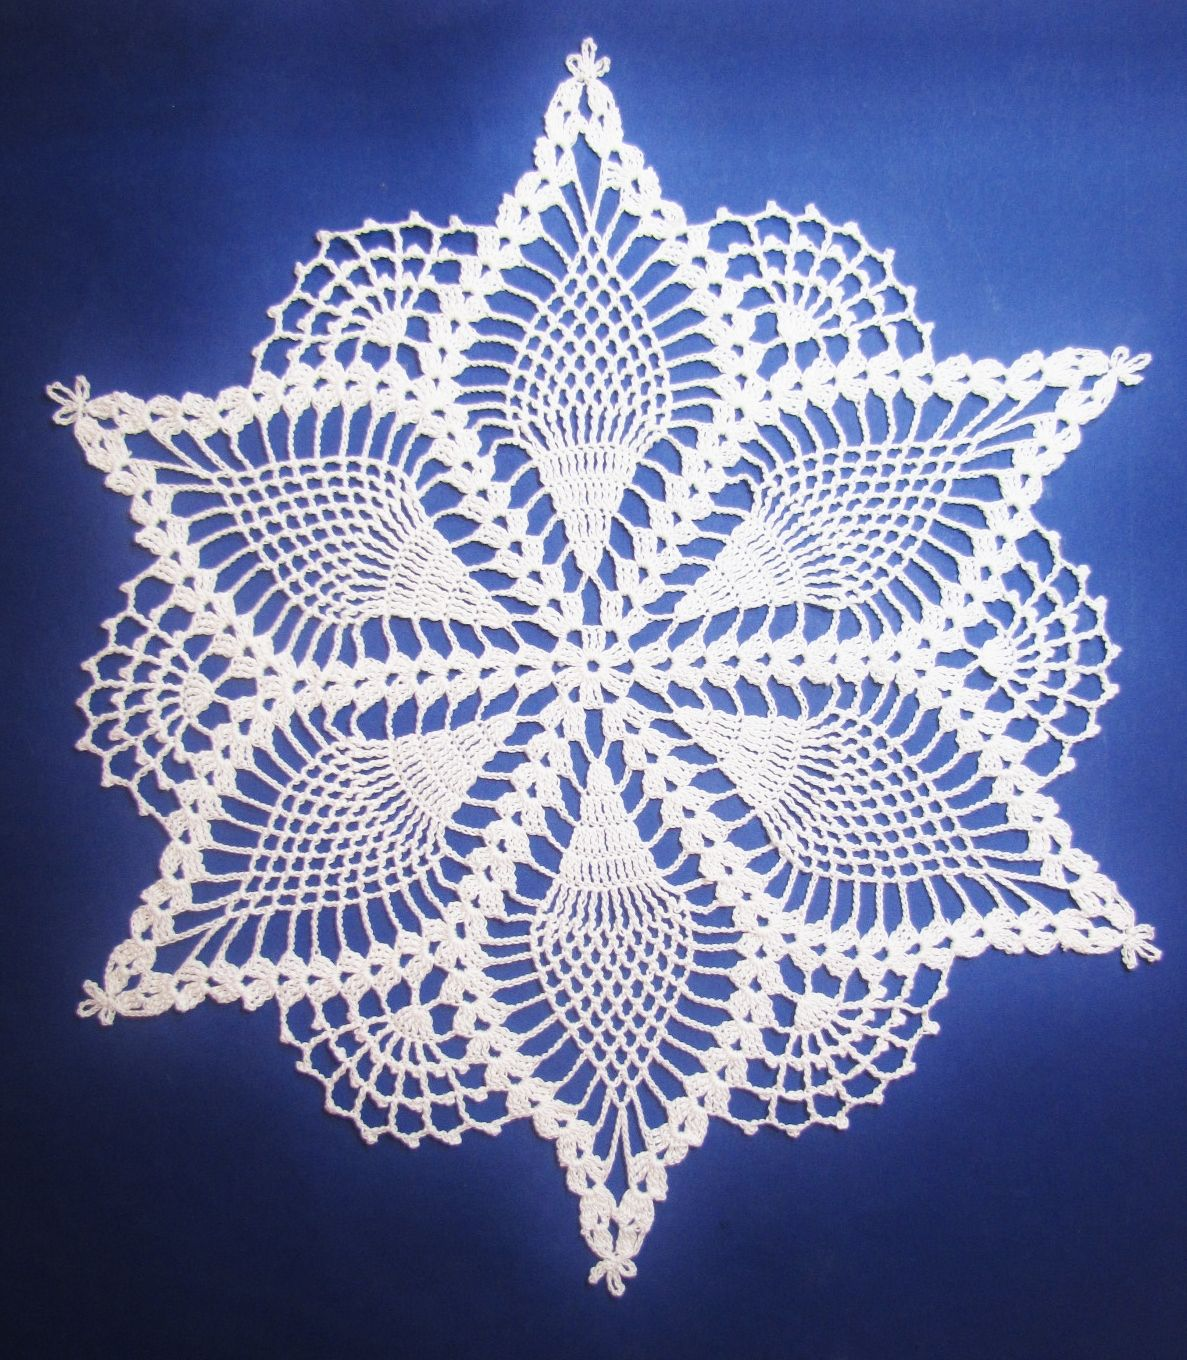 Free doilies pattern to printing this pineapple snowflake doily free doilies pattern to printing this pineapple snowflake doily pattern is a gift that will bankloansurffo Image collections